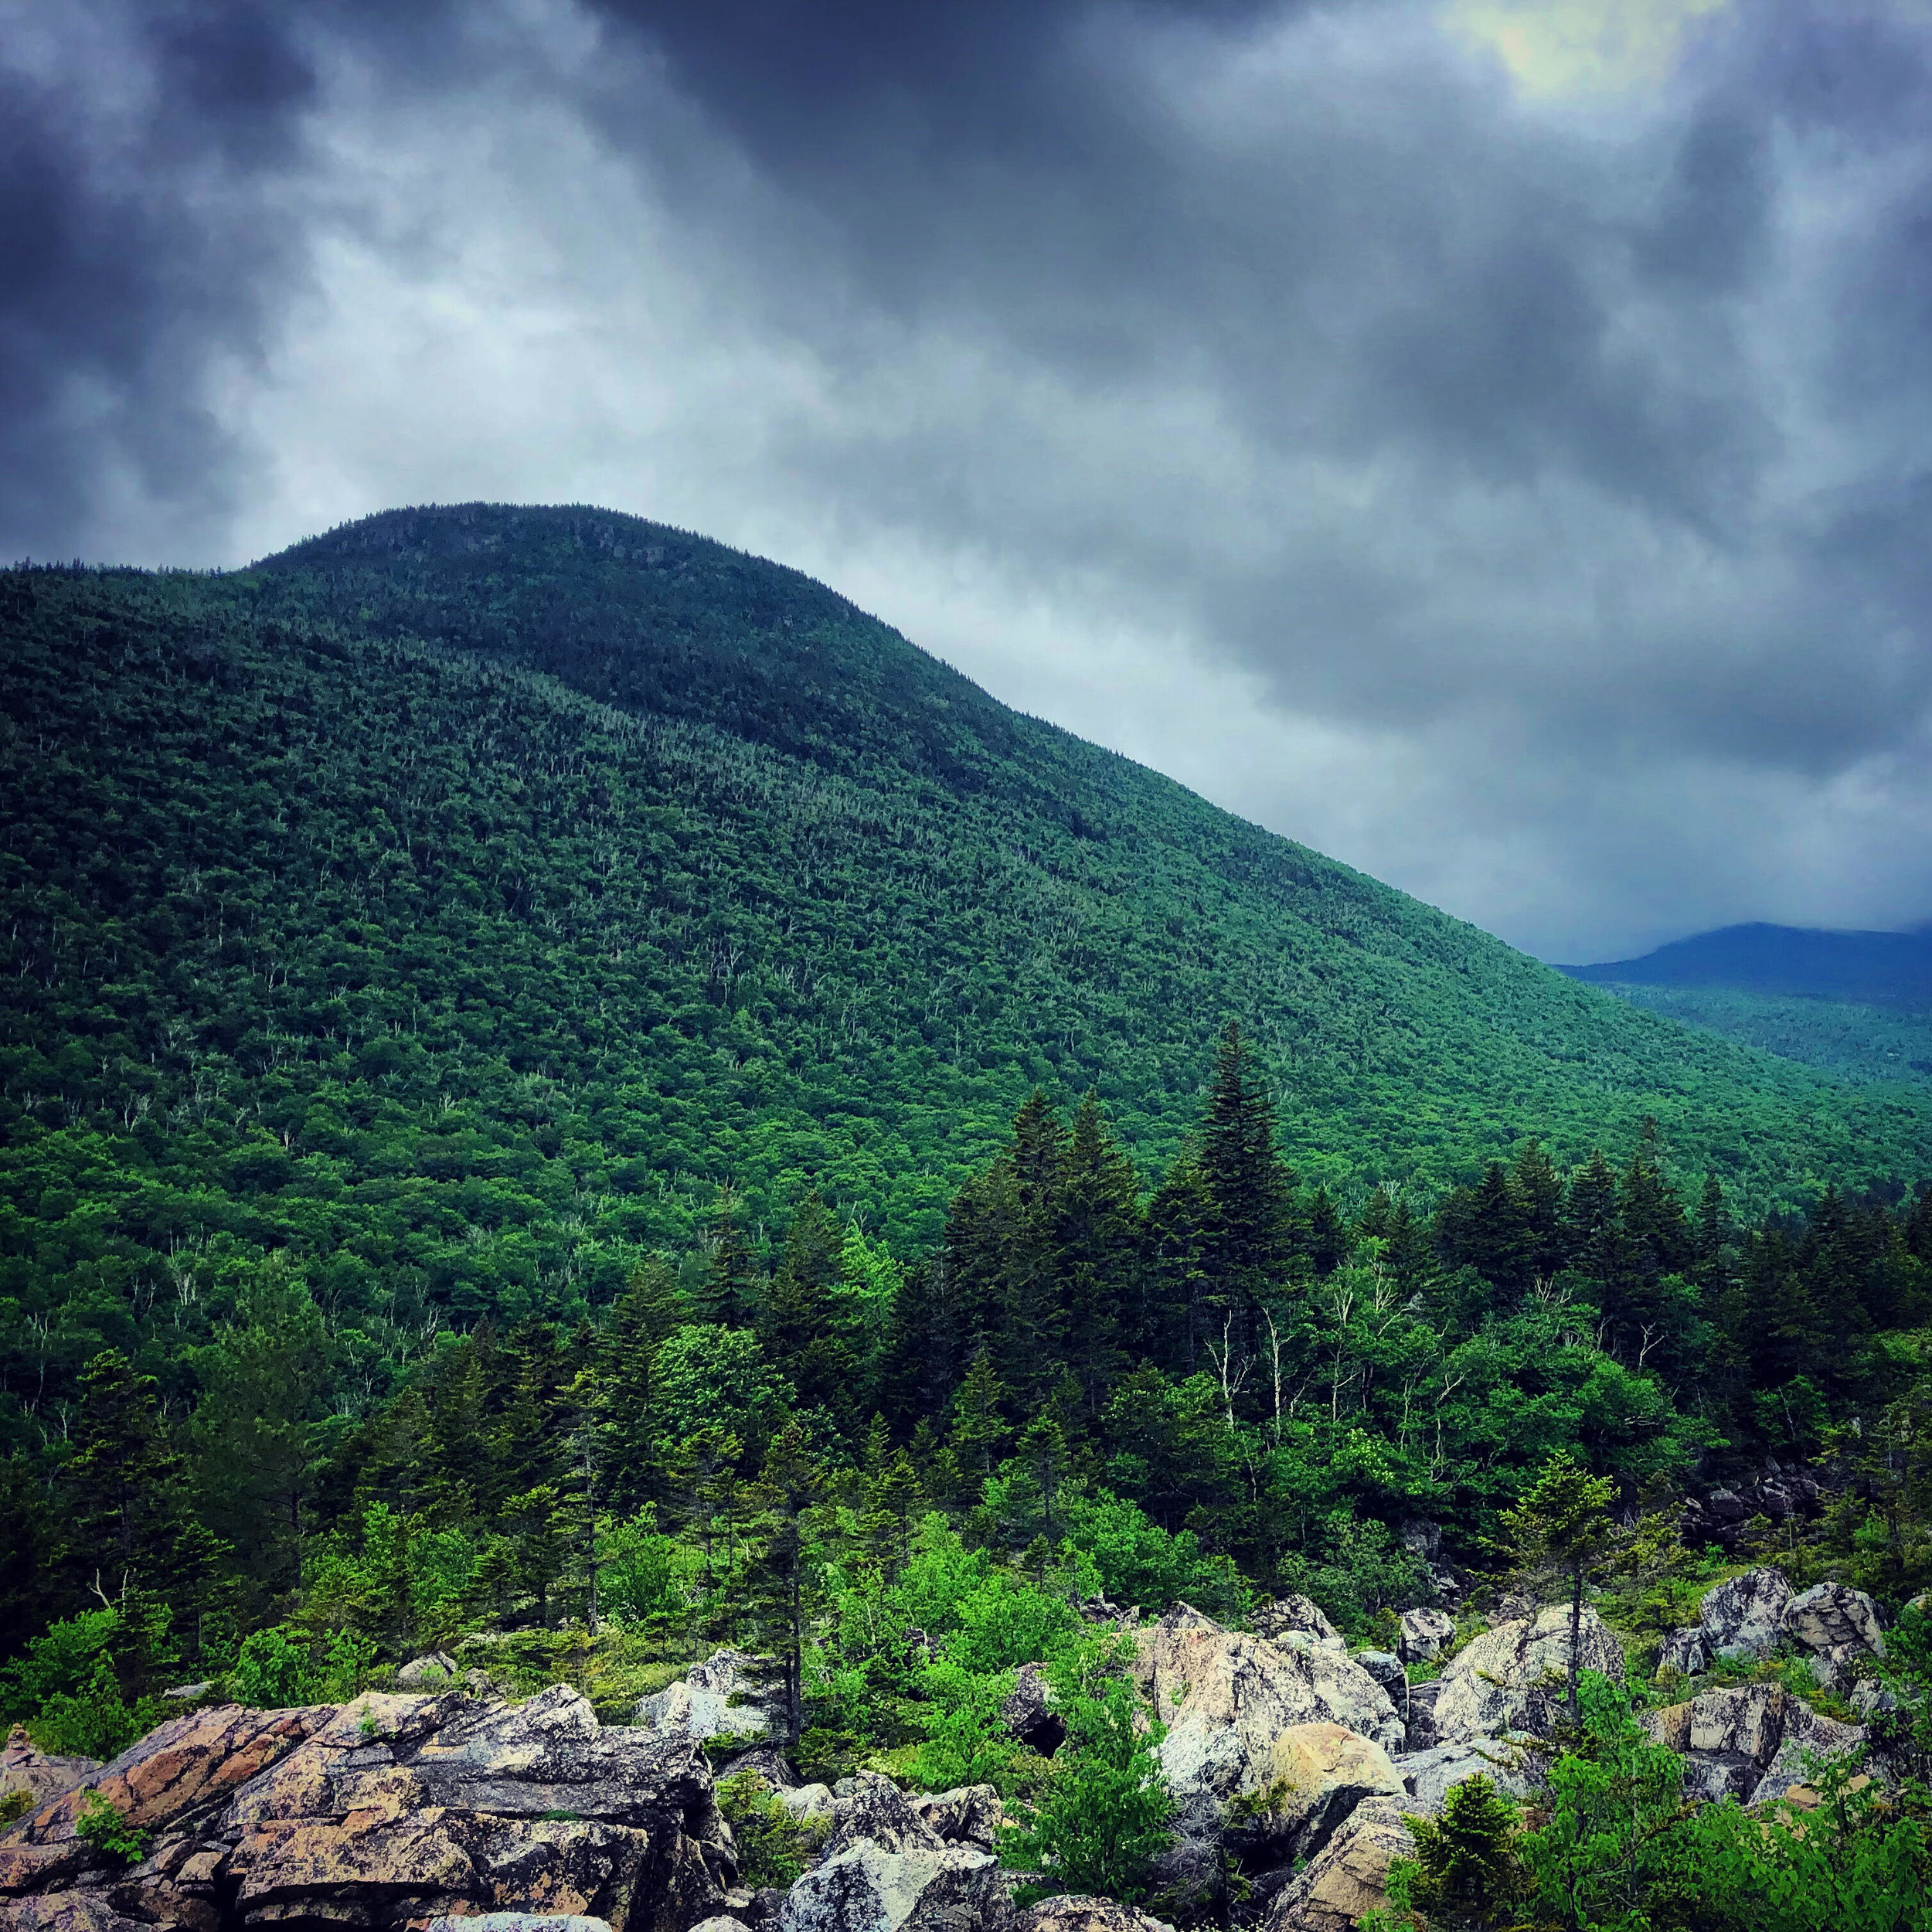 Zeacliff from the Ethan Pond Trail